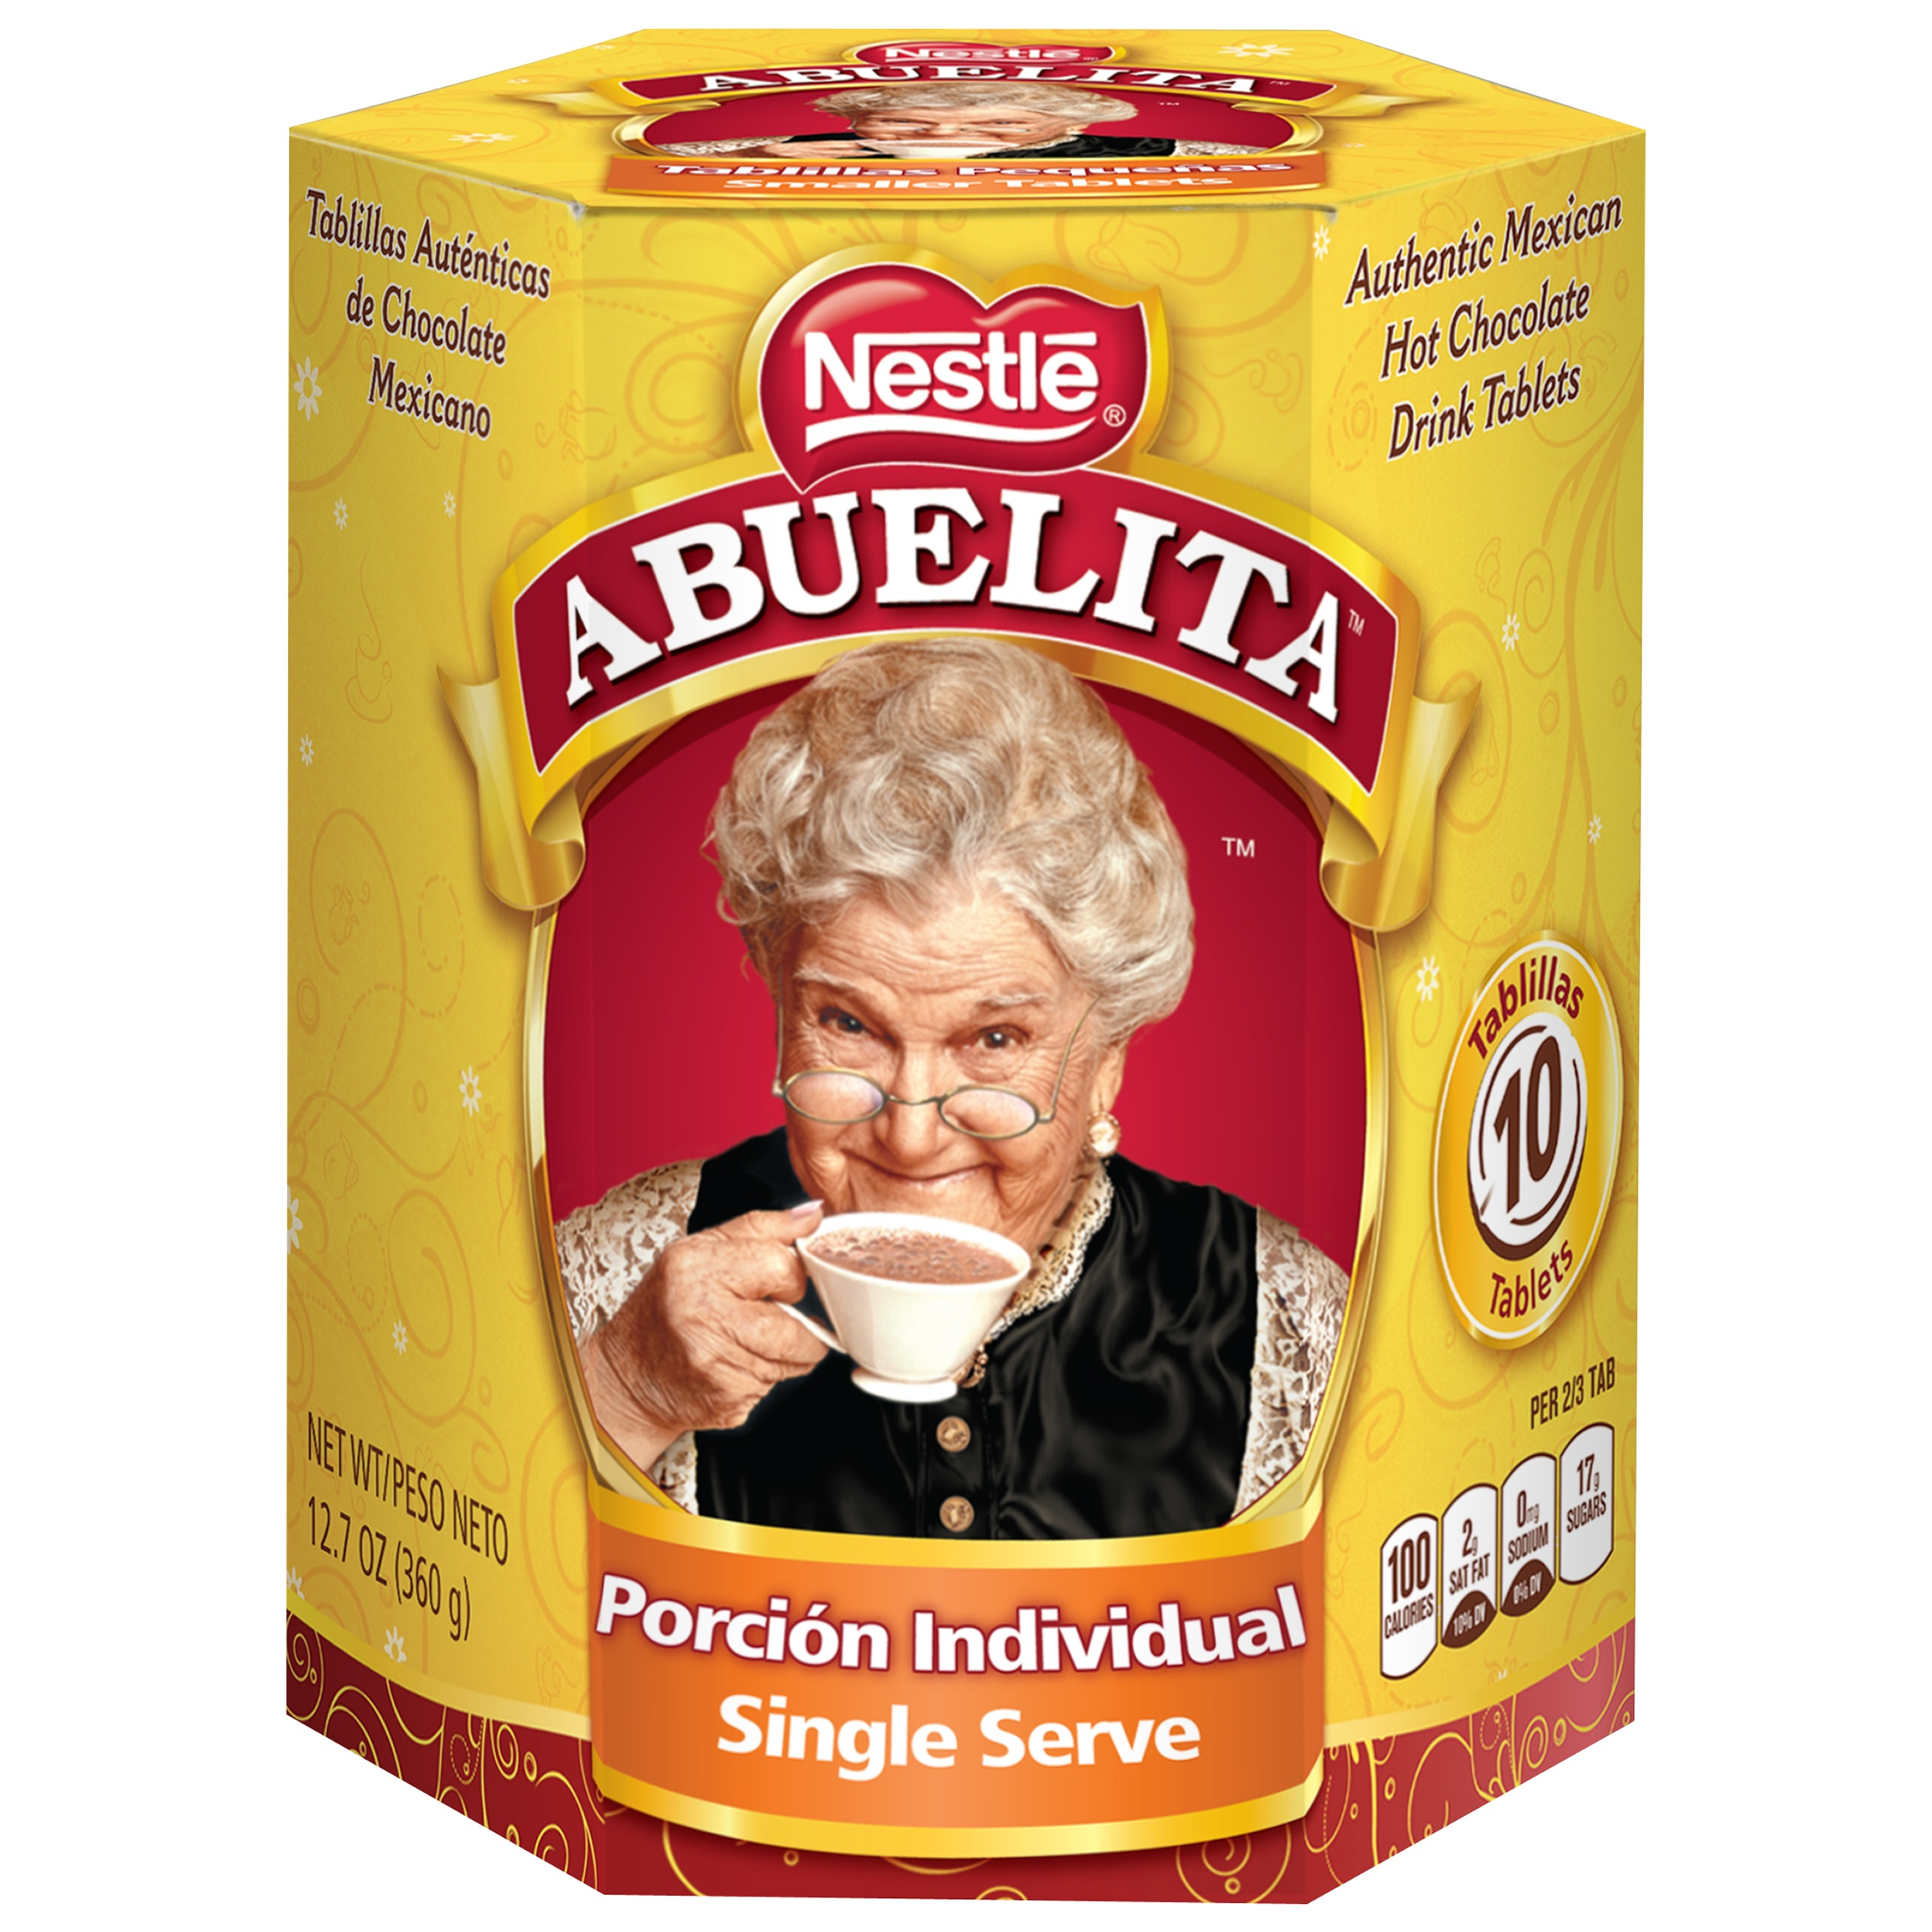 Image of Nestle ABUELITA Authentic Mexican Hot Chocolate Single Serve Drink Tablets 12.7 oz. Box